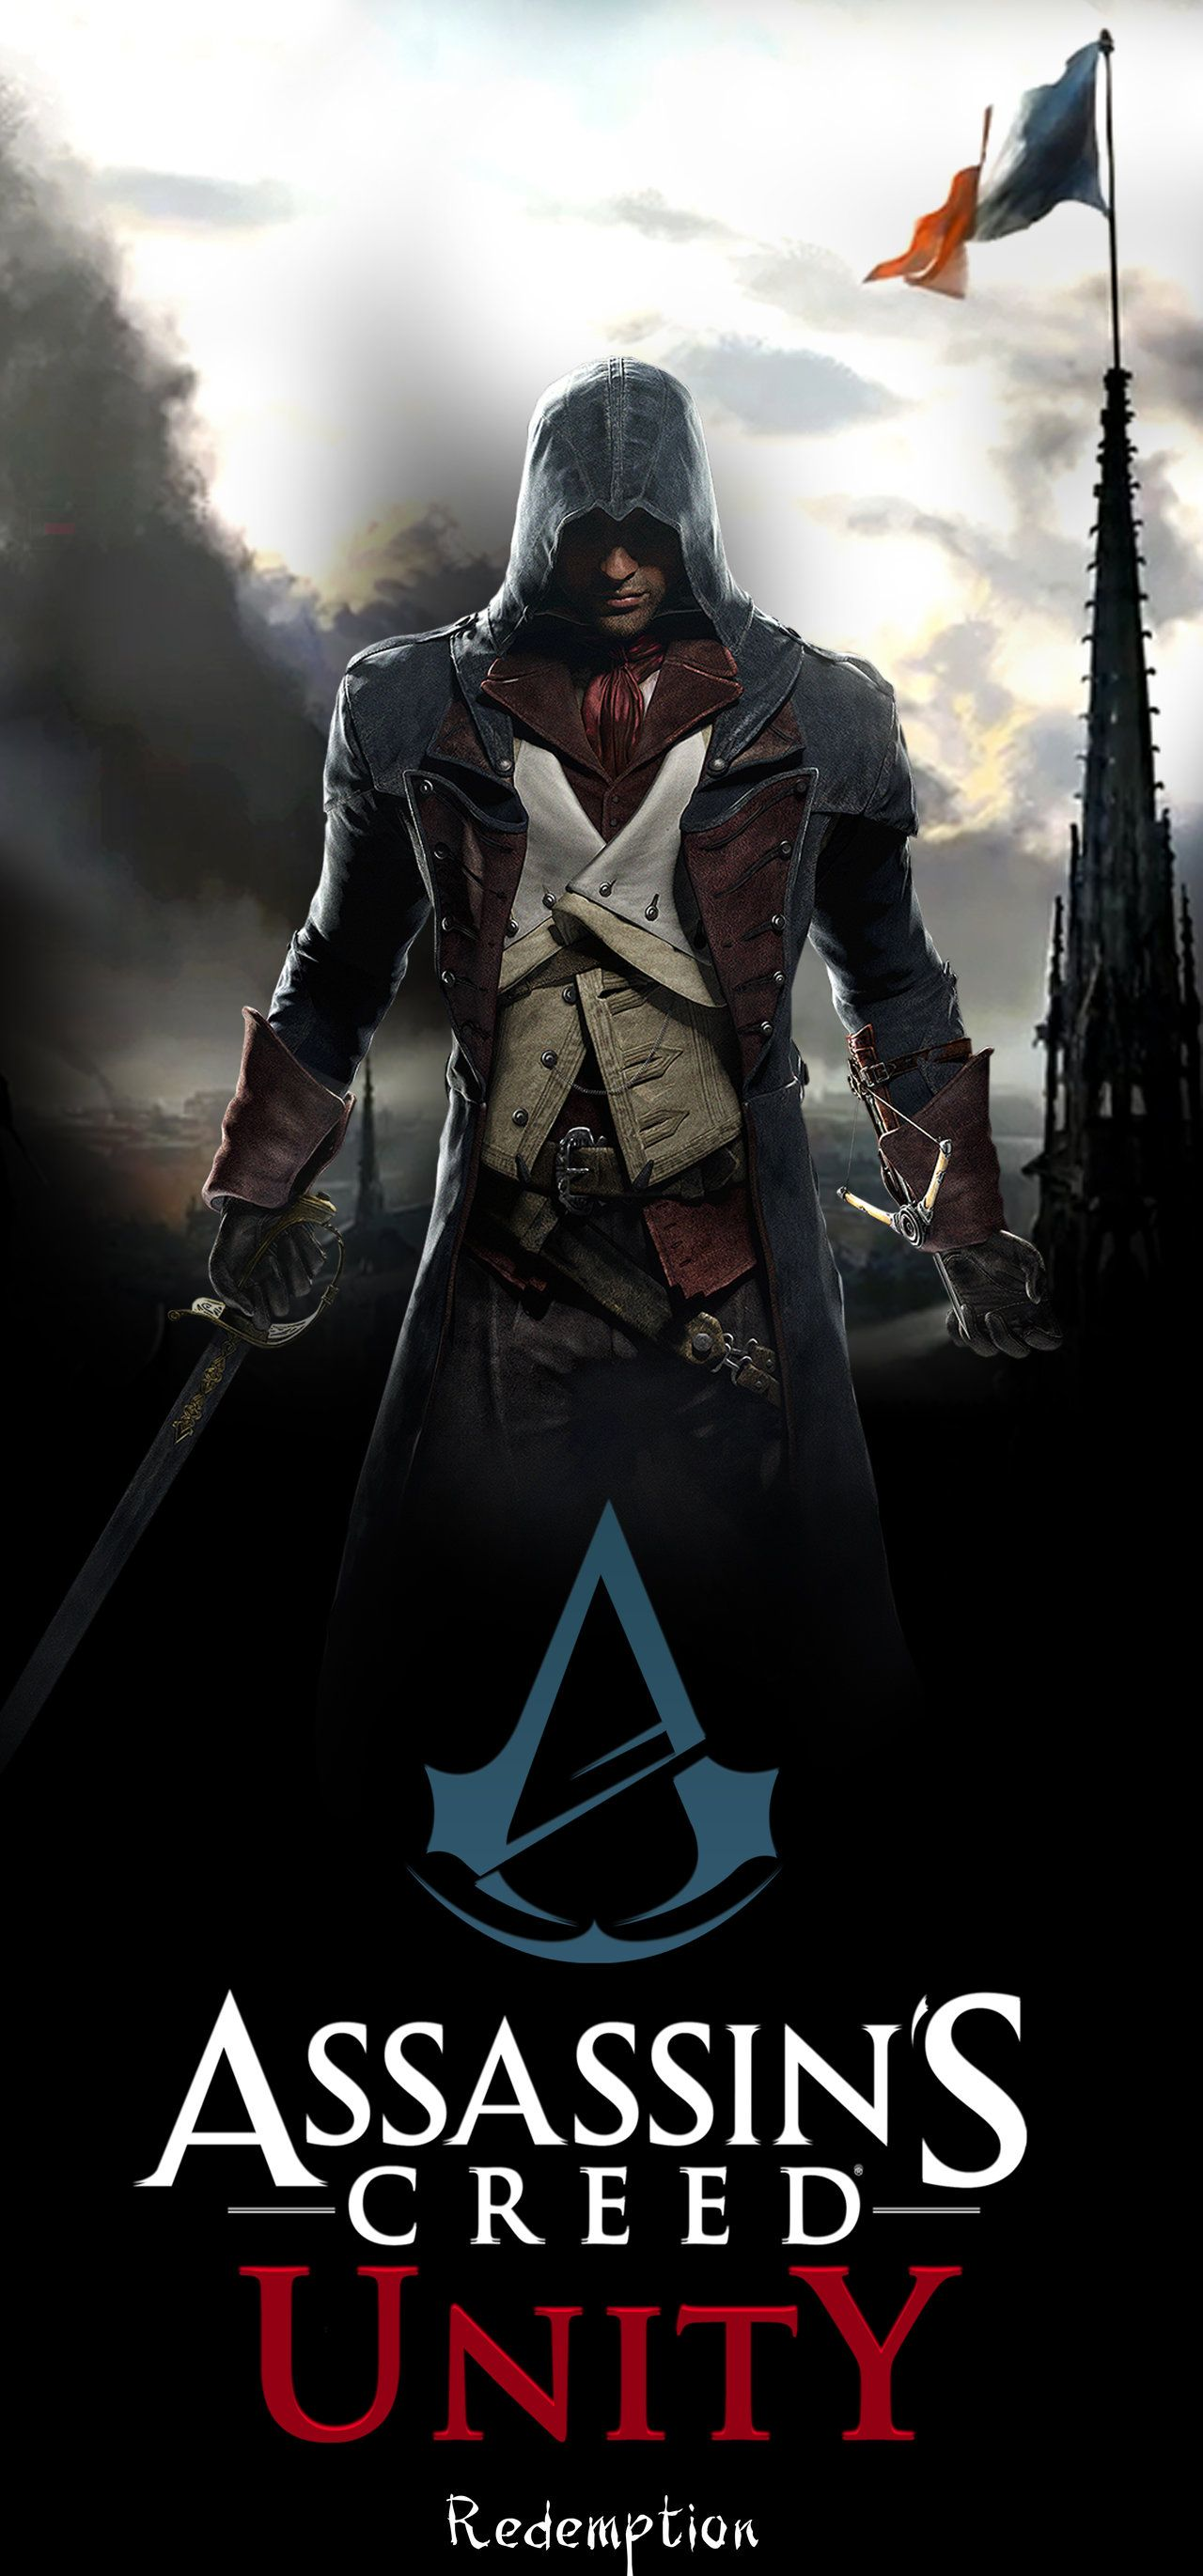 Assassin S Creed Poster Large Arno By Ven93 Deviantart Com On Deviantart Assassins Creed Assassins Creed Unity Arno Assassin S Creed